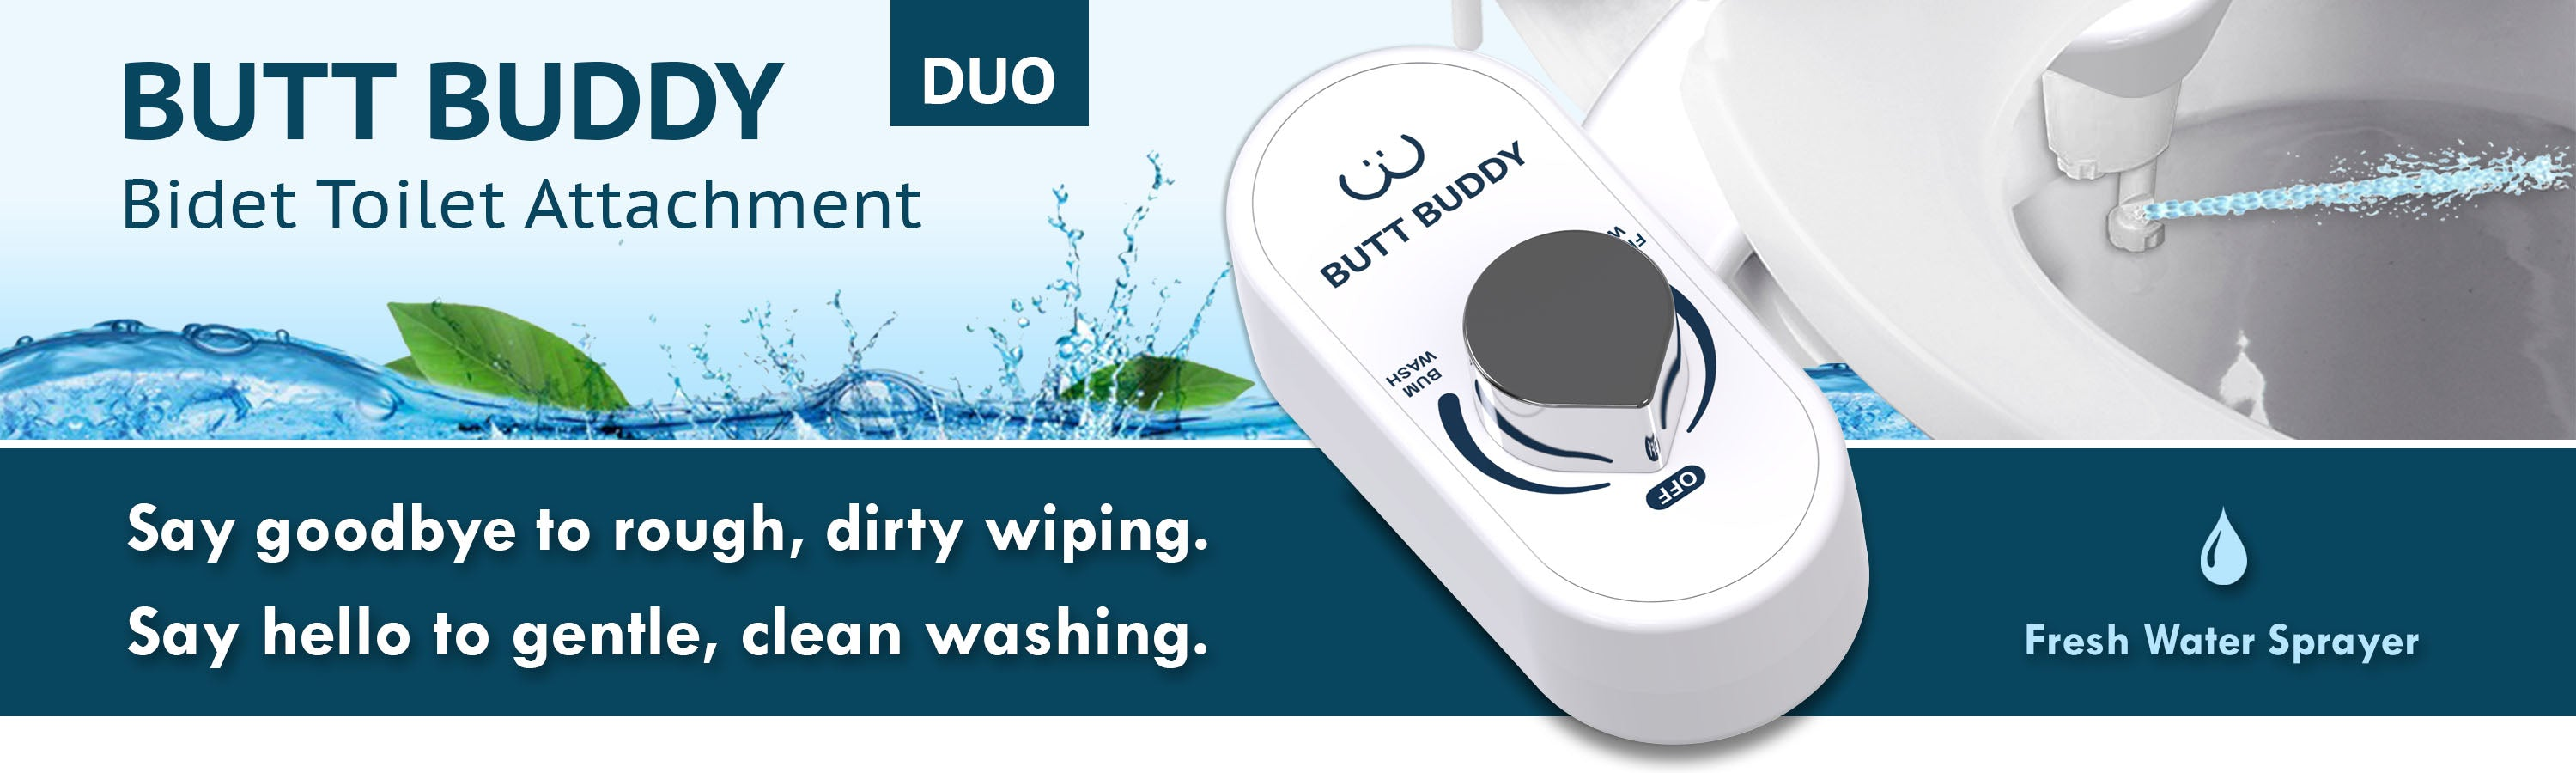 In My Bathroom - IMB - Butt Buddy - Bidet Toilet Attachment - Fresh Water Sprayer - Stop Dirty Wiping - Start Clean Washing - Product Banner - BBB